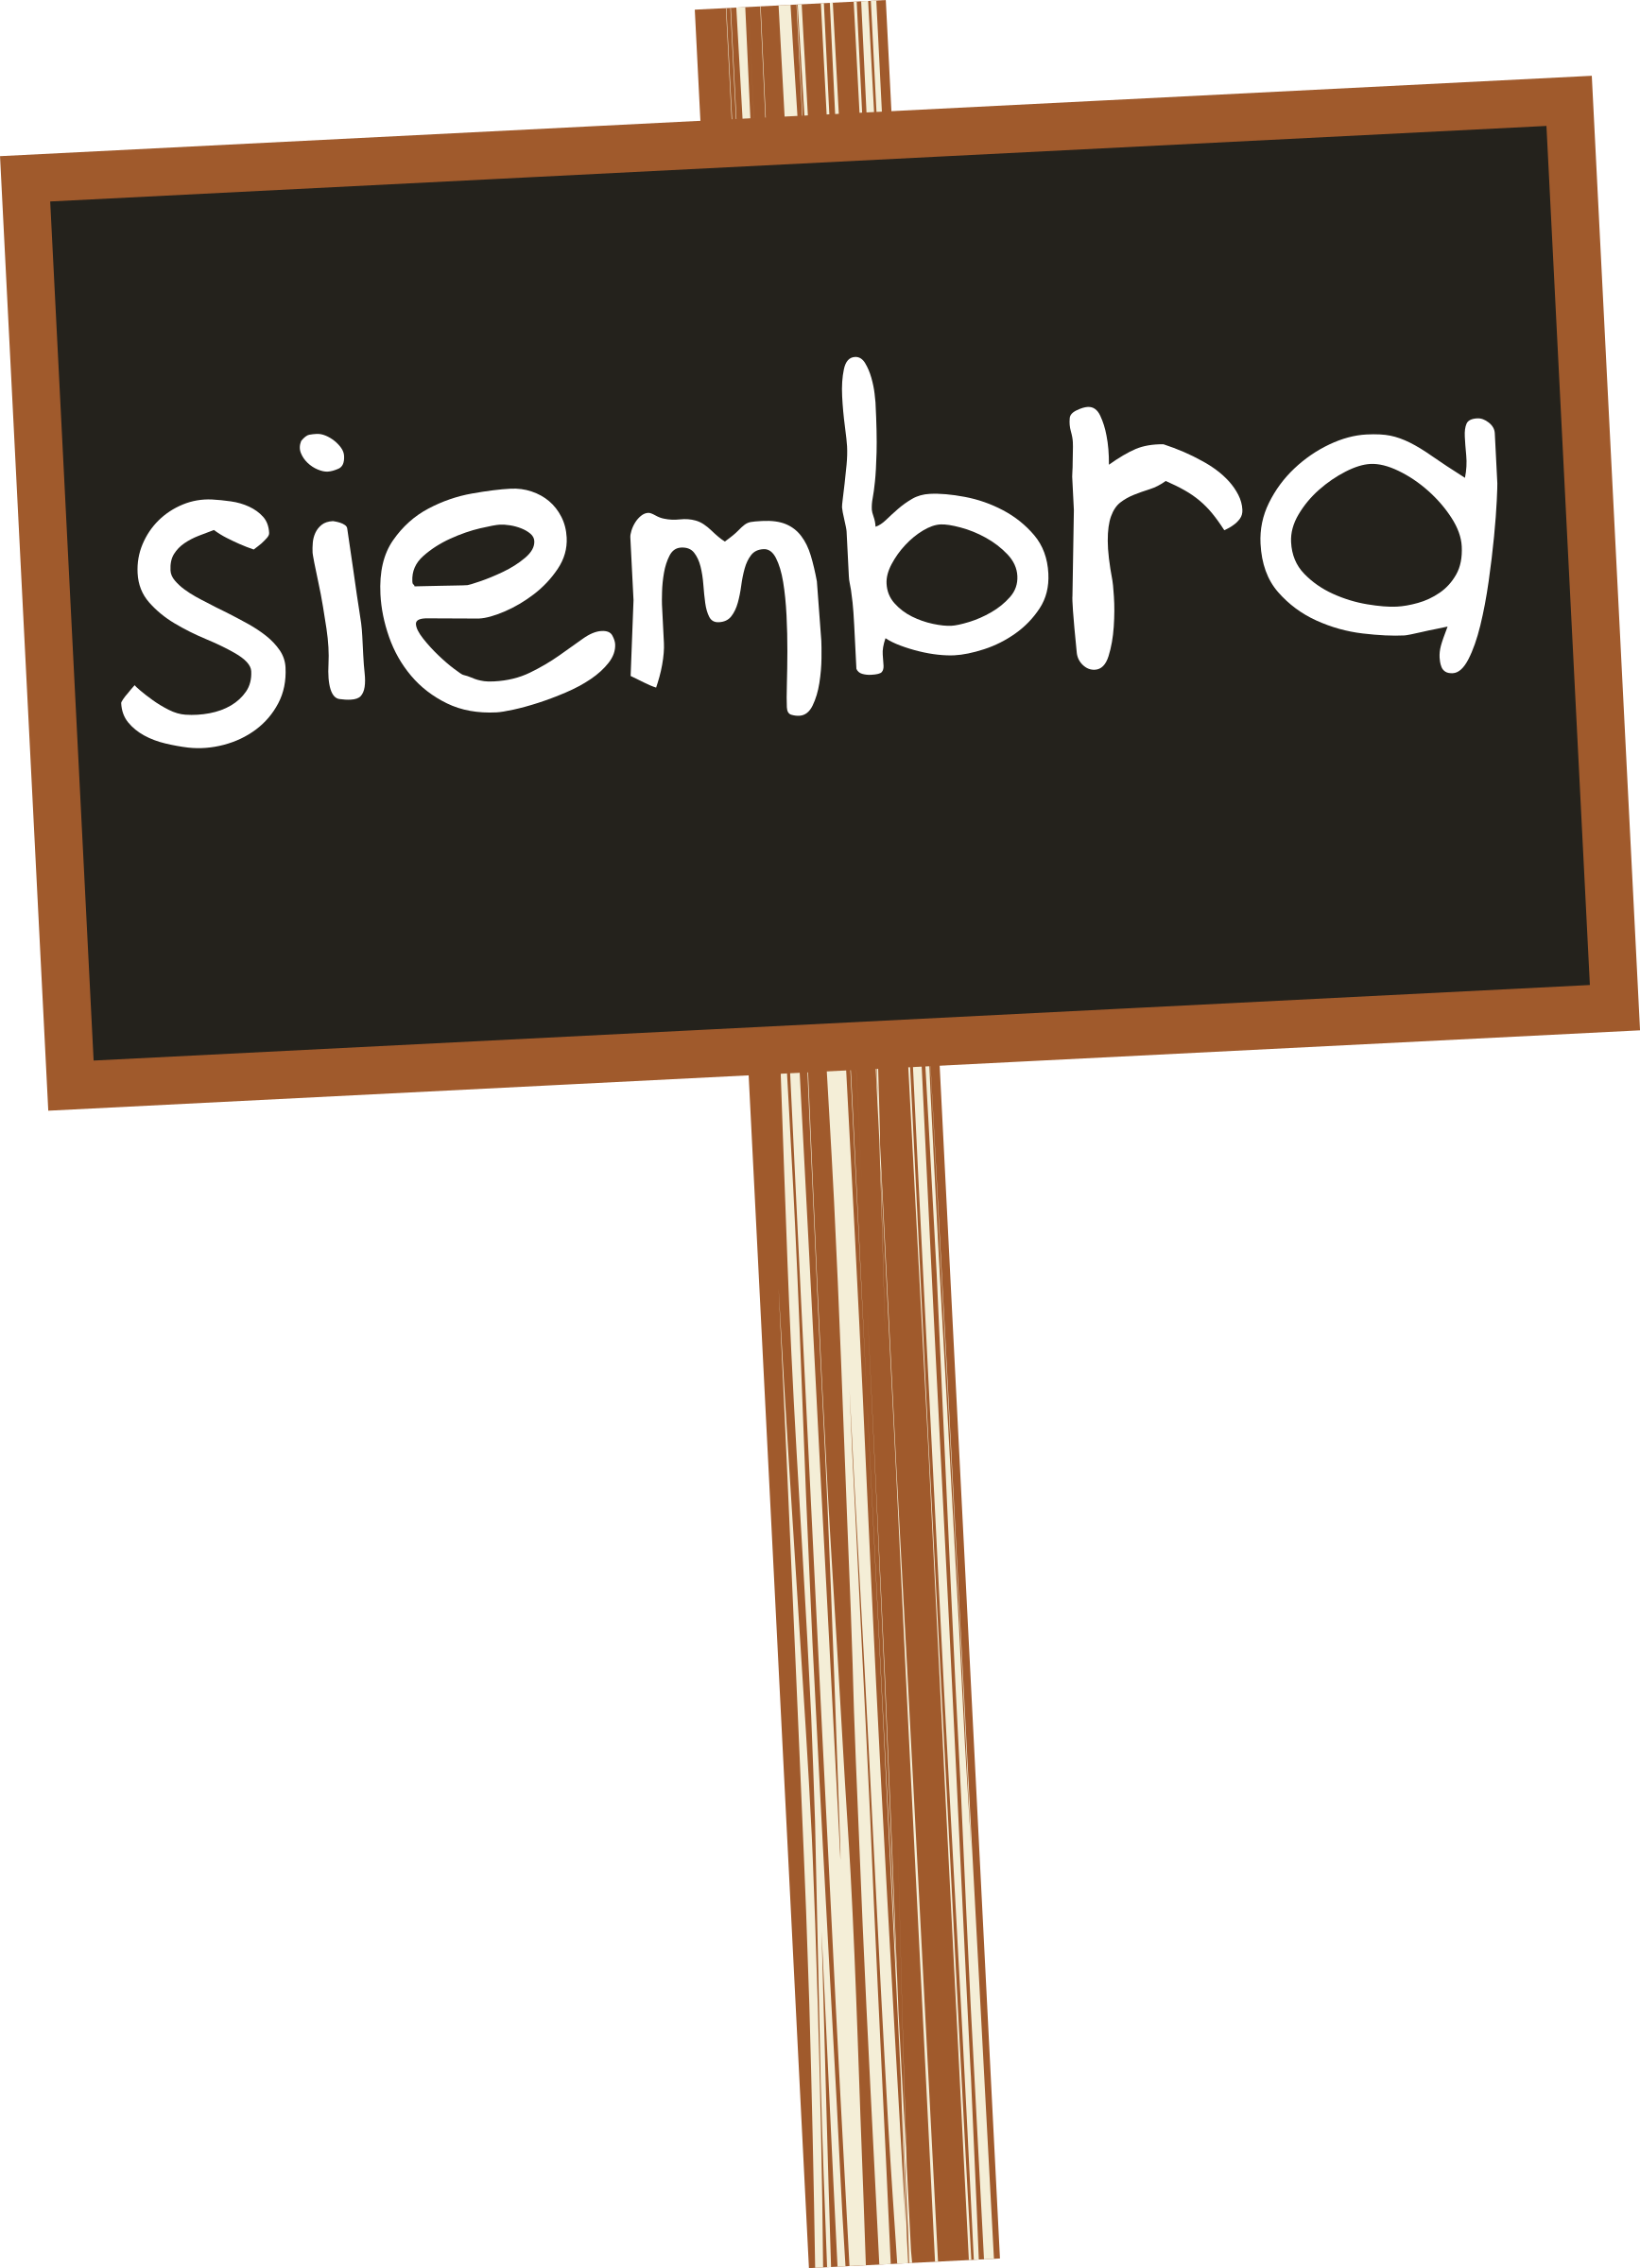 Pizarra, blackboard by mediobit